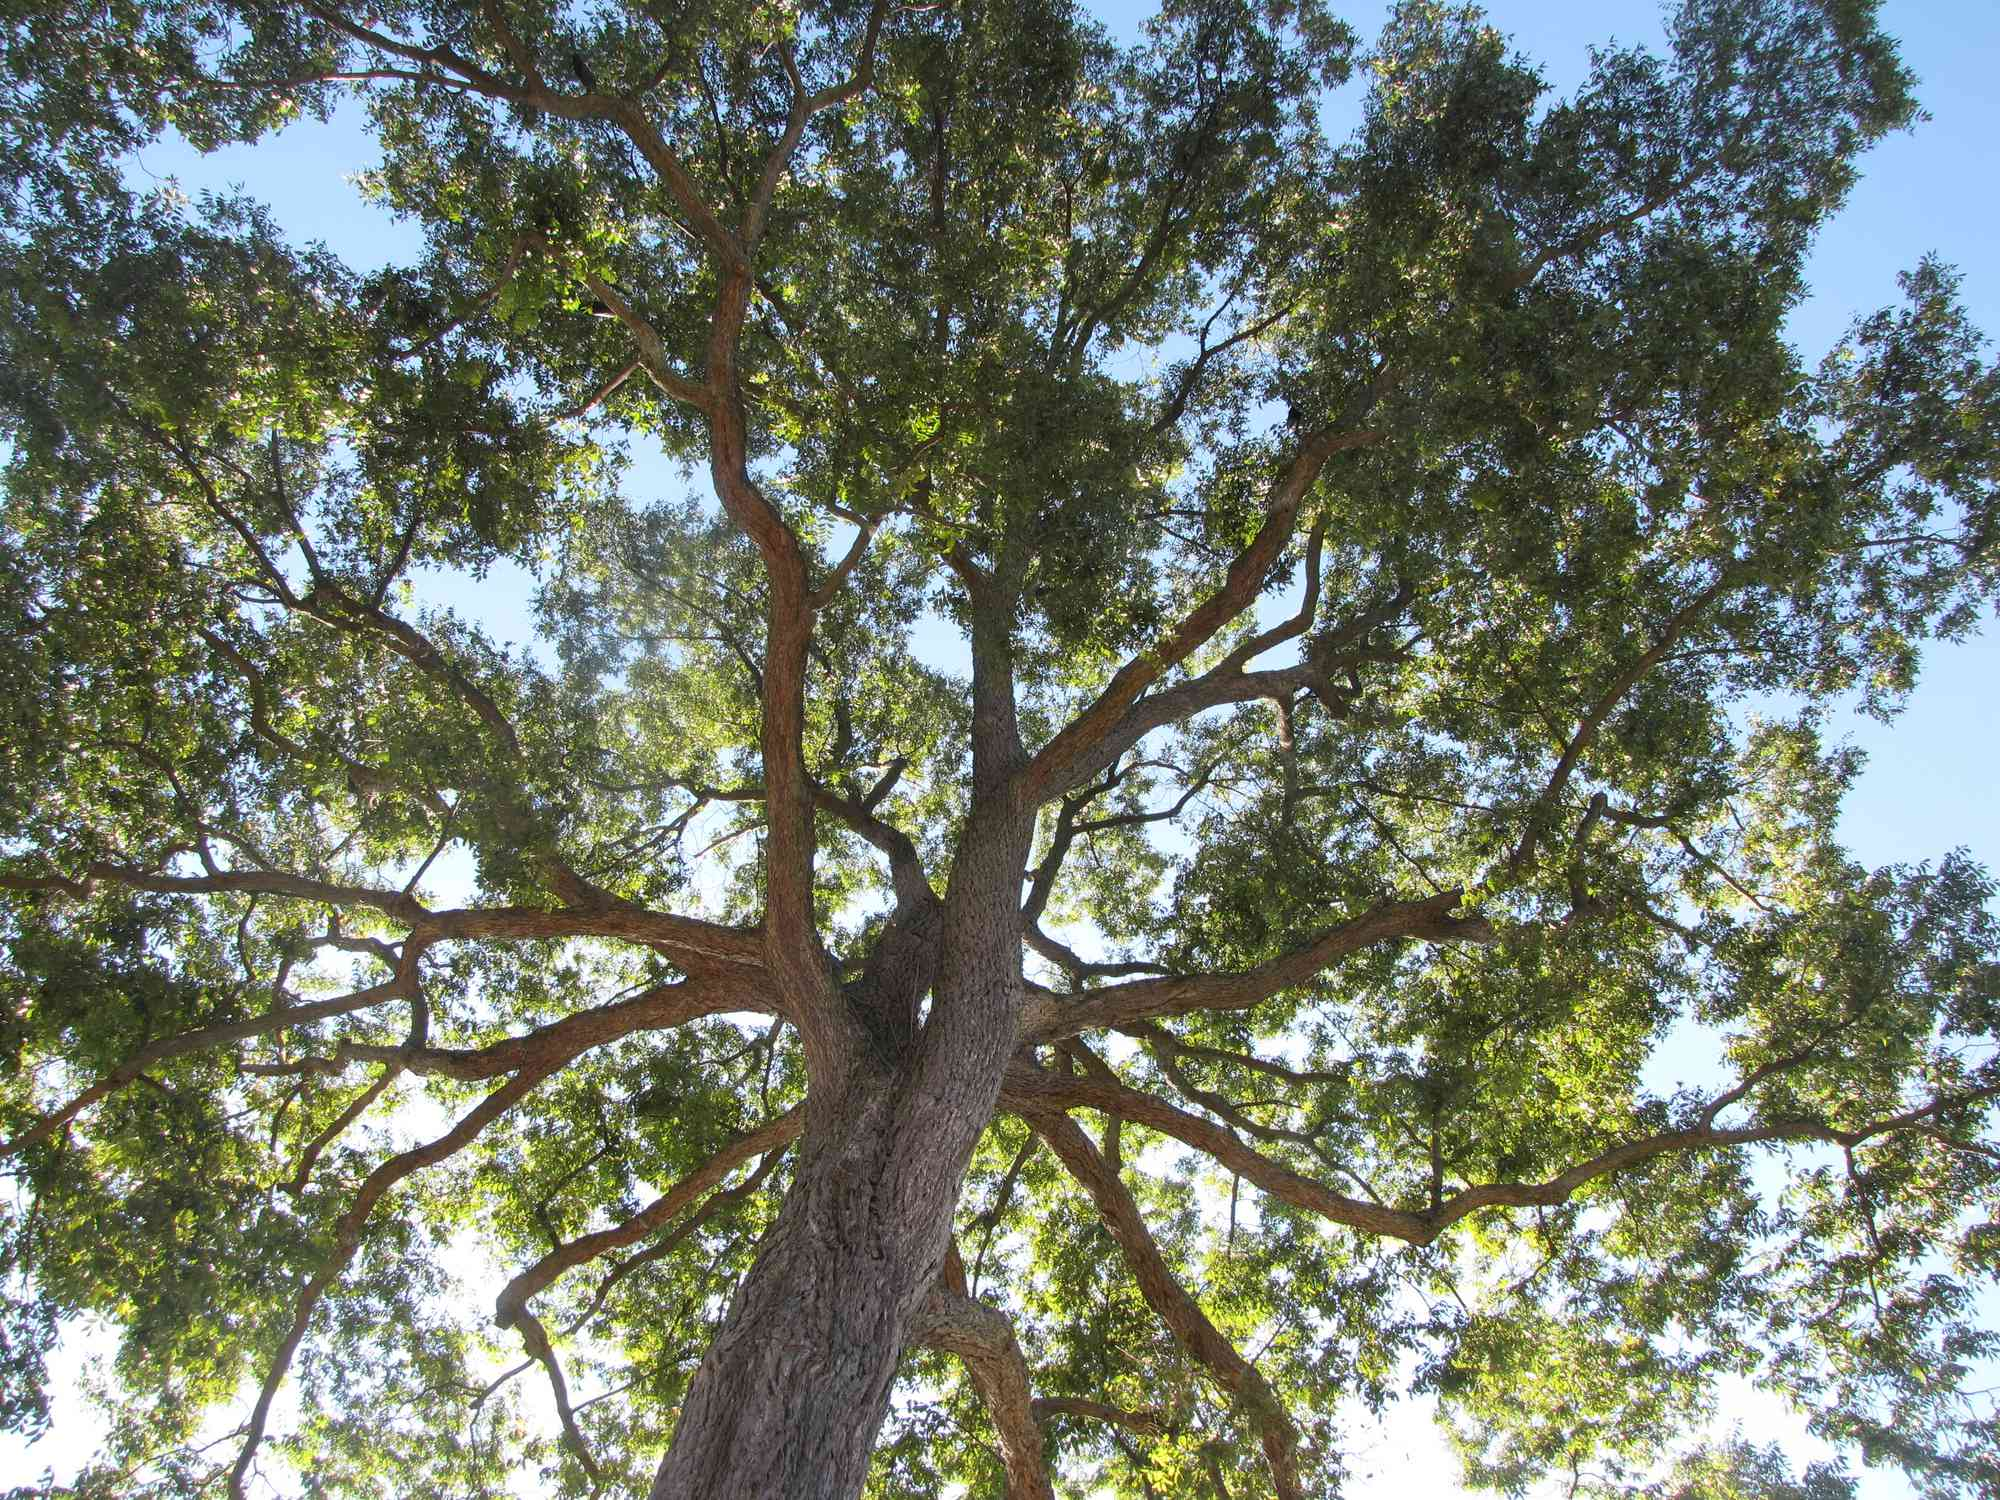 Pecan trees are tall trees with a wide canopy